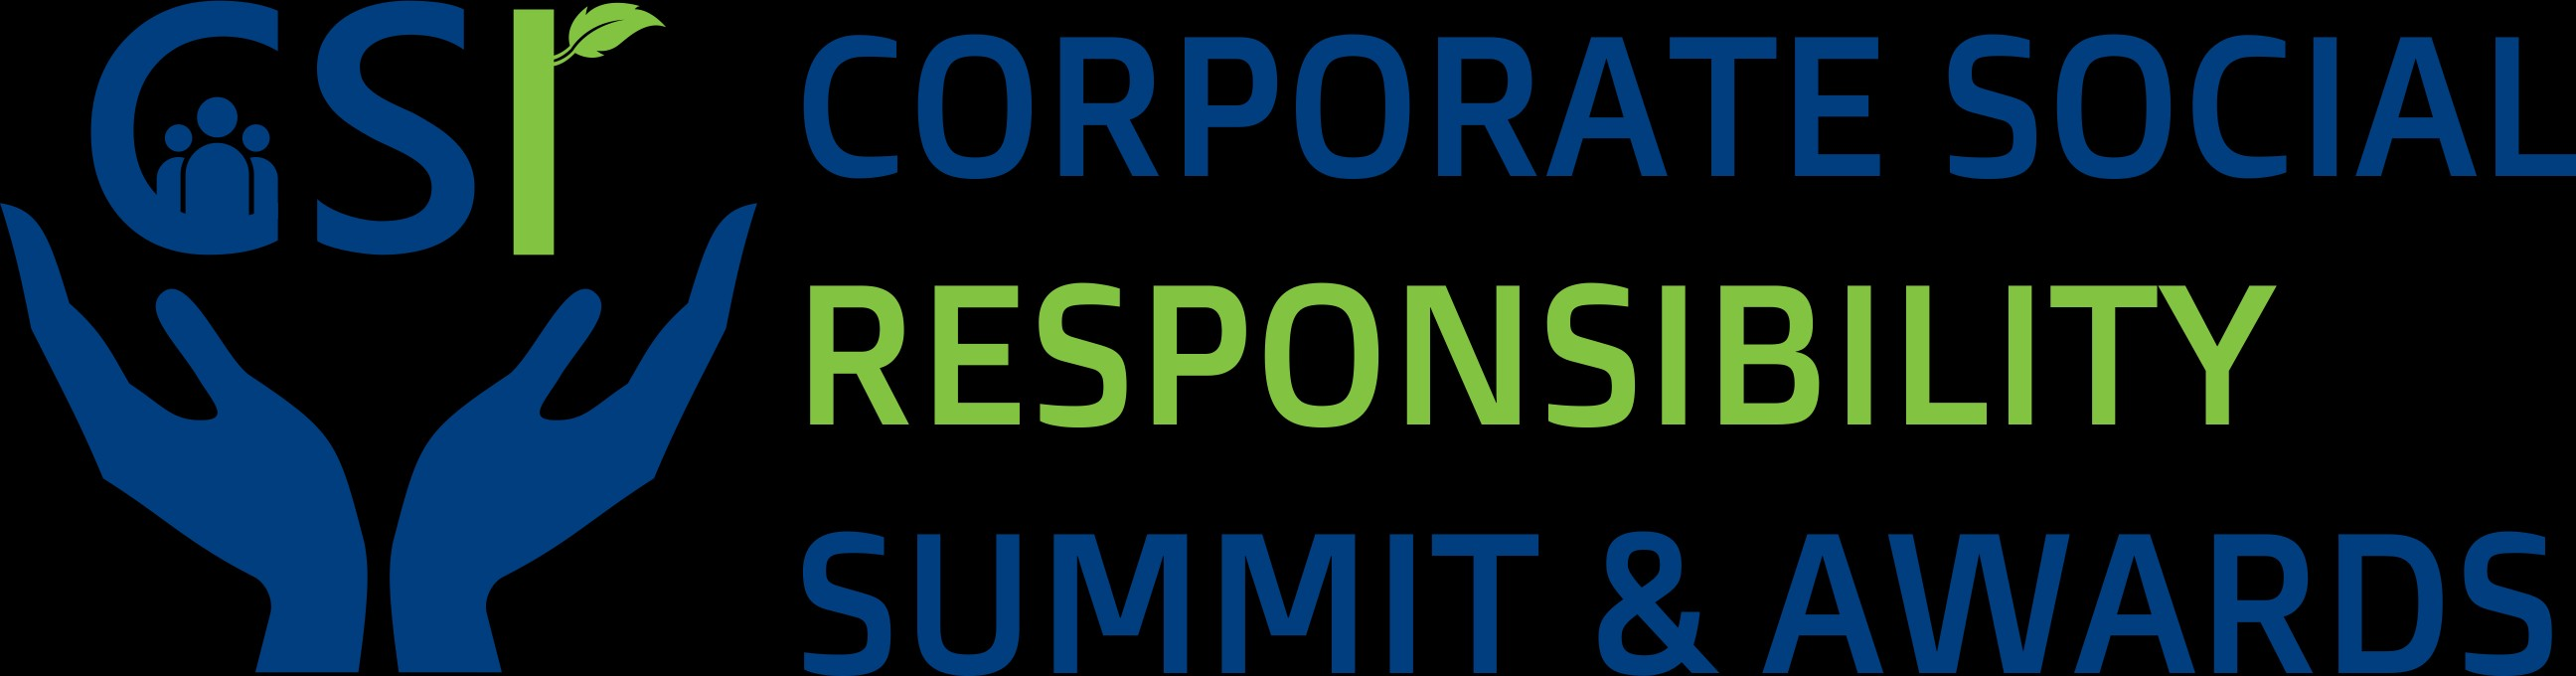 Our Partner Events Corporate Social Responsibility Summit & Awards 2018